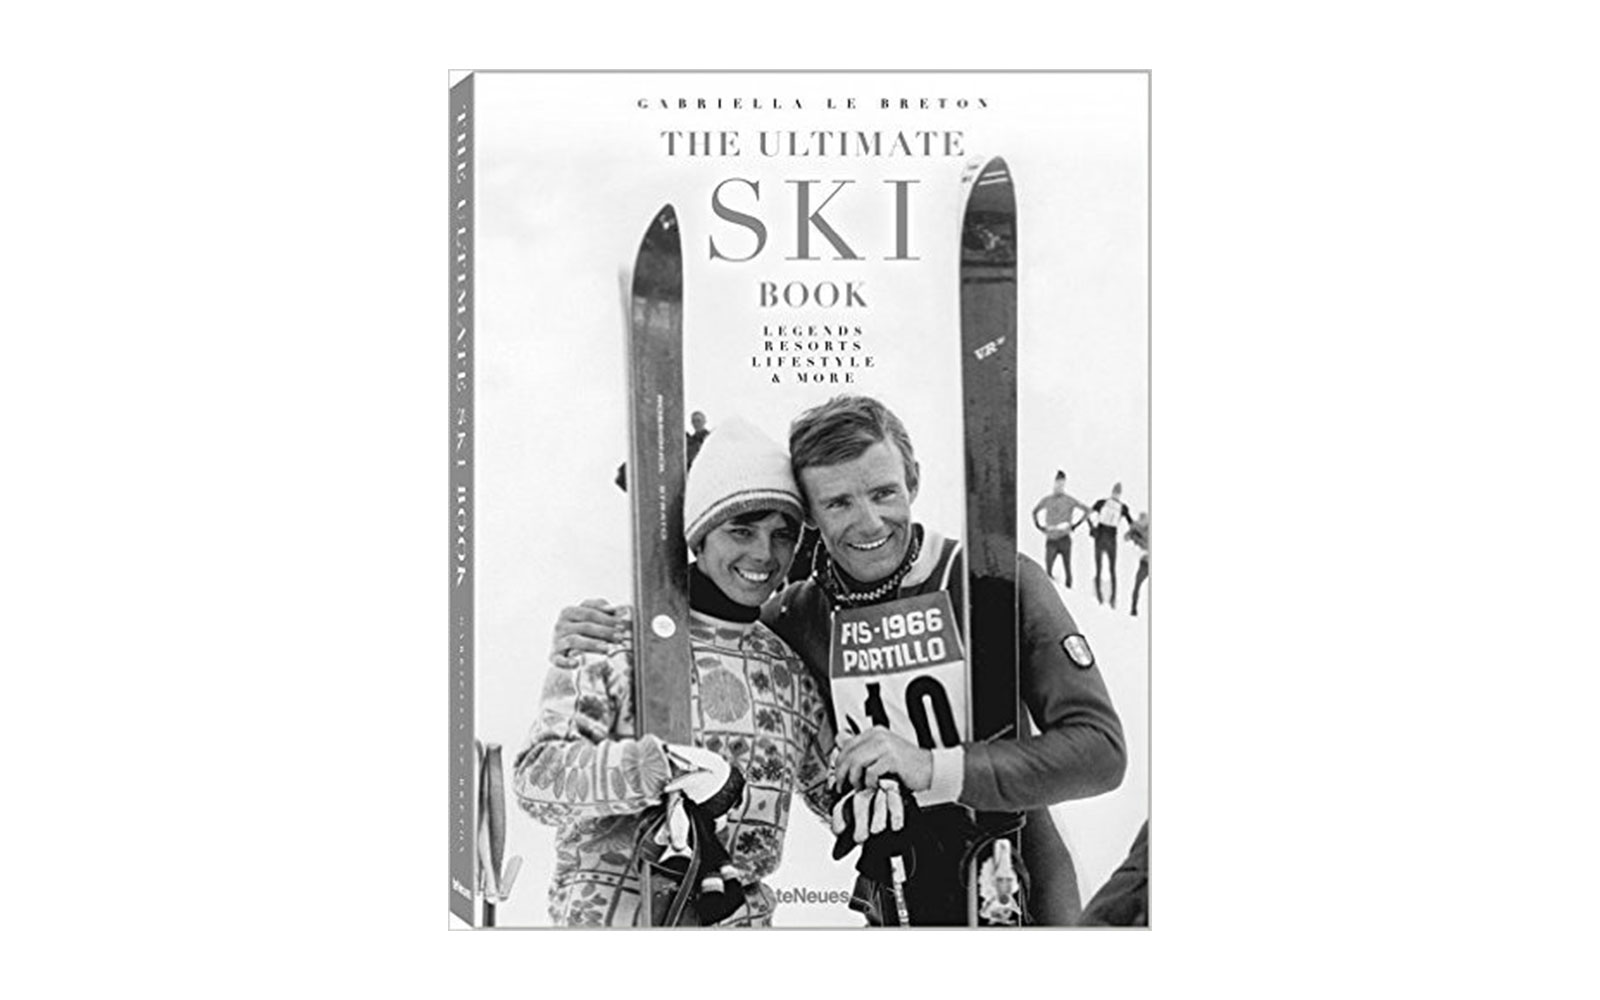 The Ultimate Ski Book: Legends, Resorts, Lifestyle & More